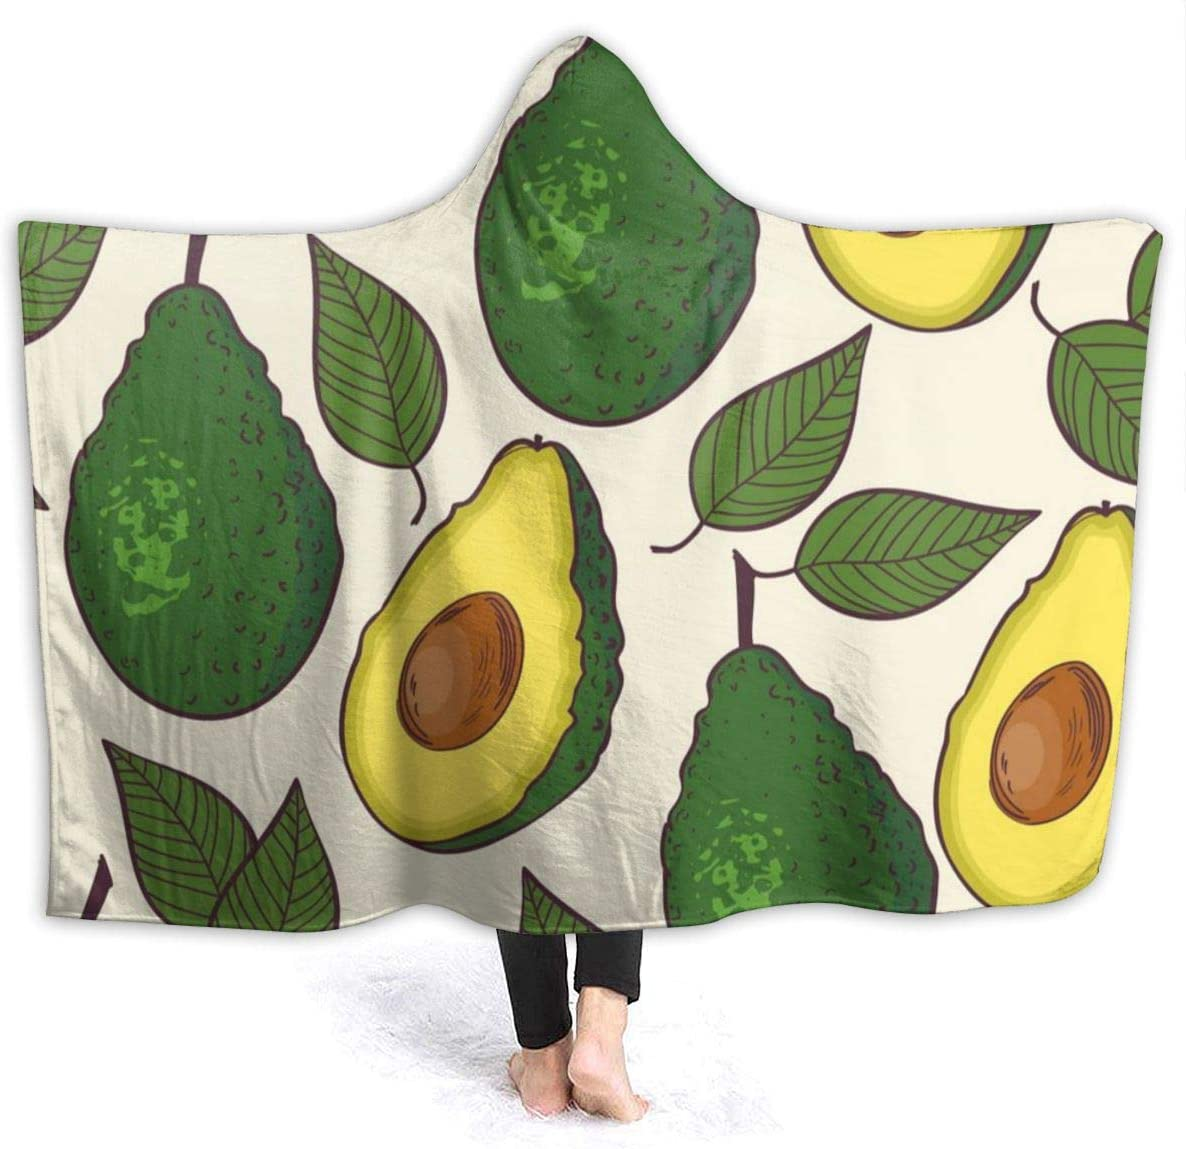 Arrisum Avocado Greem Nature Green Cute Simple Super Soft Flannel Throw Blanket for Adult and Kids Digital Printed Ultra-Soft Micro Fleece Blanket 50X40 for Kids